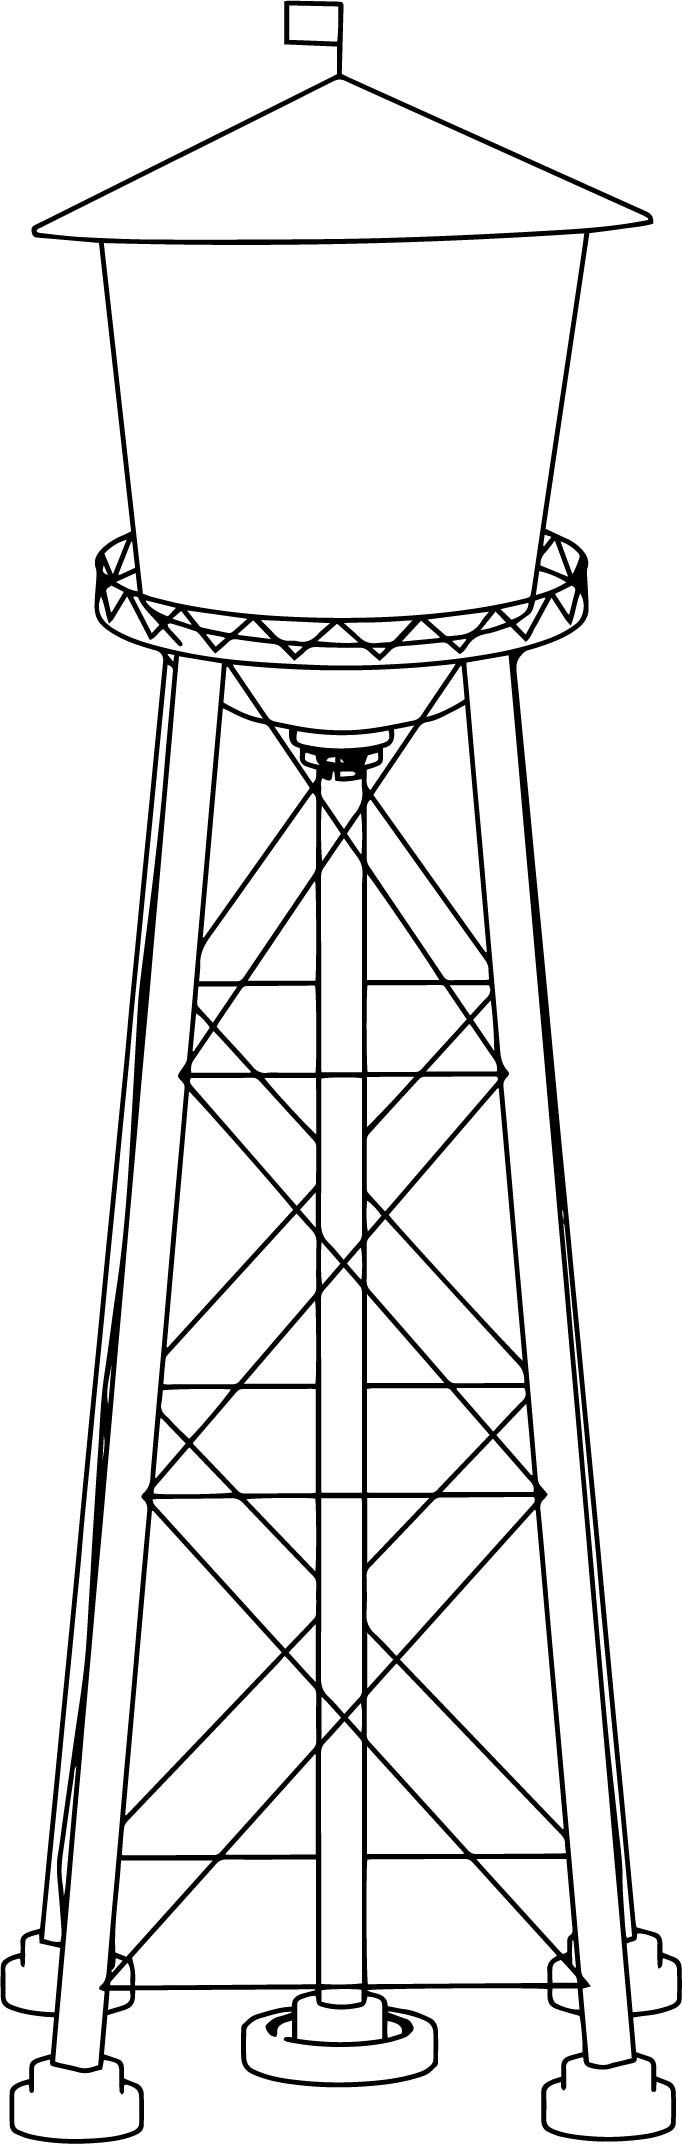 tower coloring pages nice watertower revised coloring page with images pages tower coloring